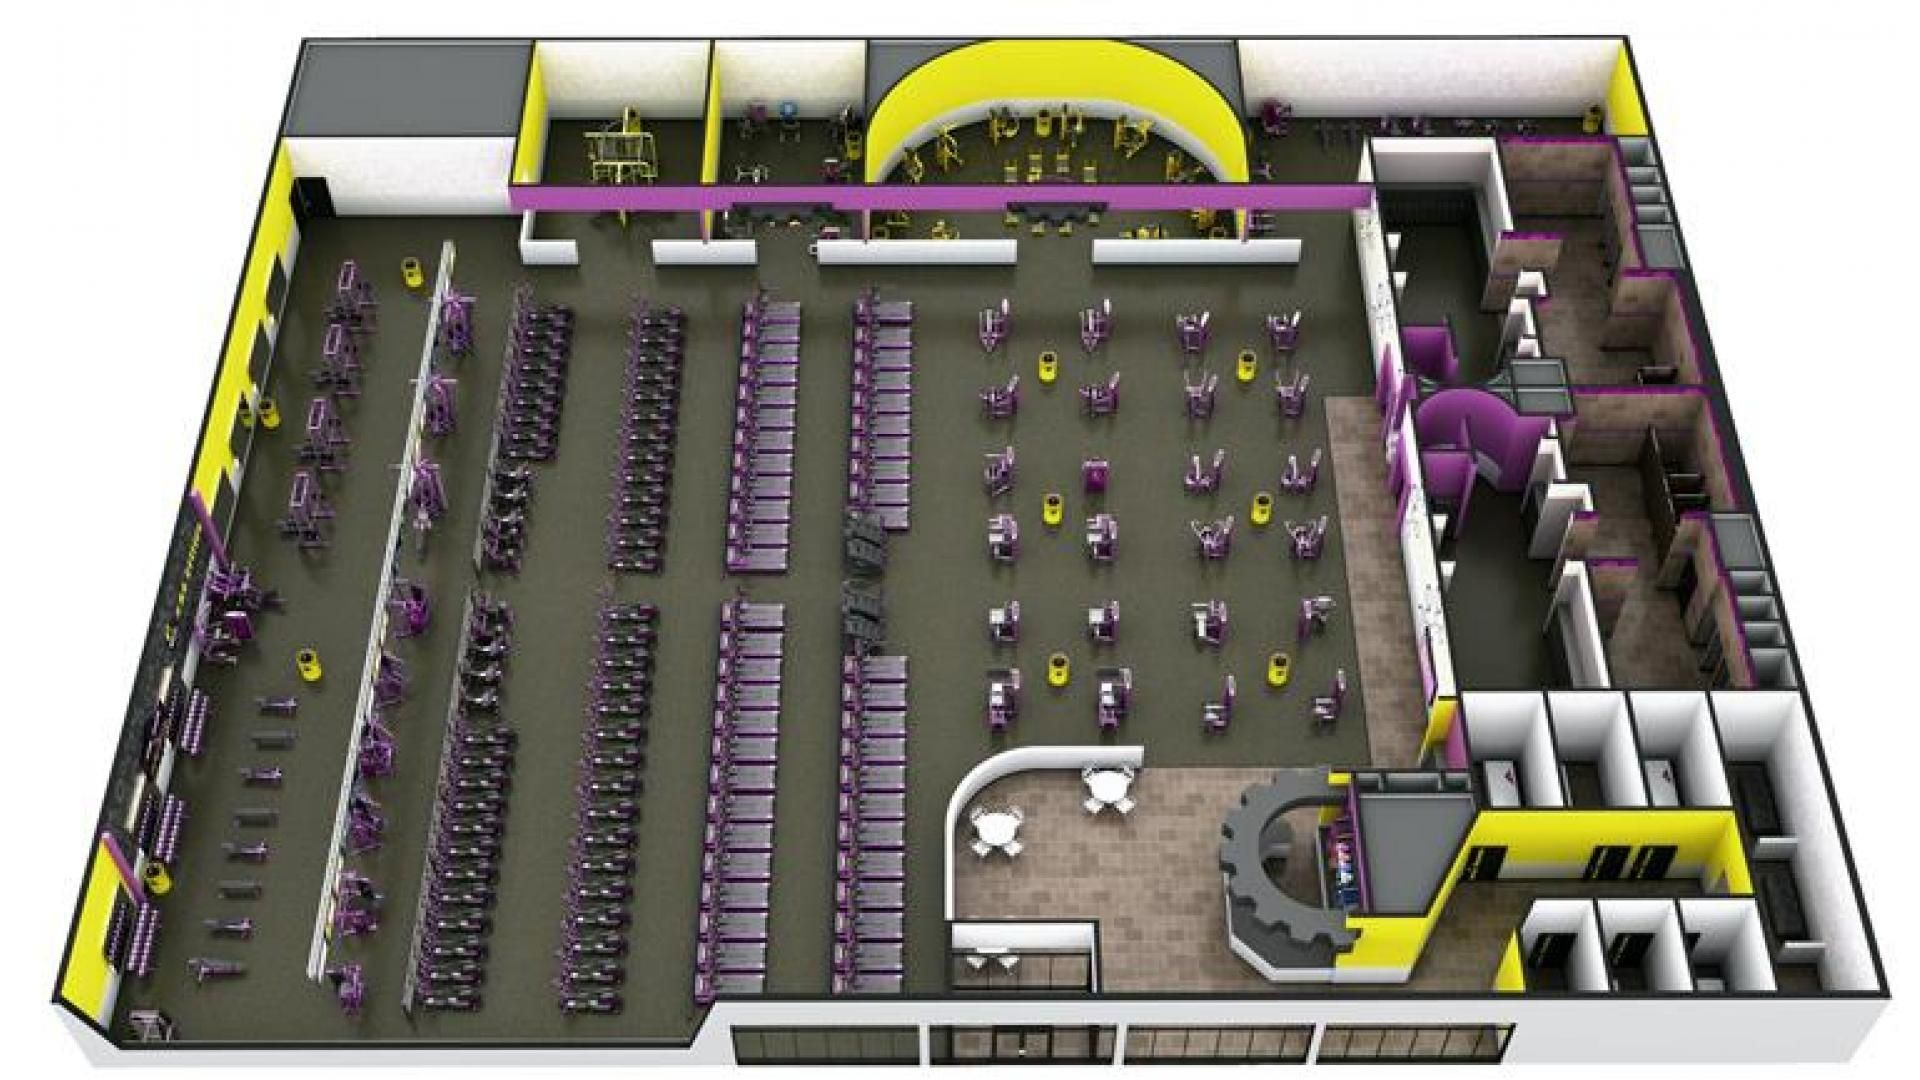 Planet Fitness Gym Layout Sport1stfuture Org